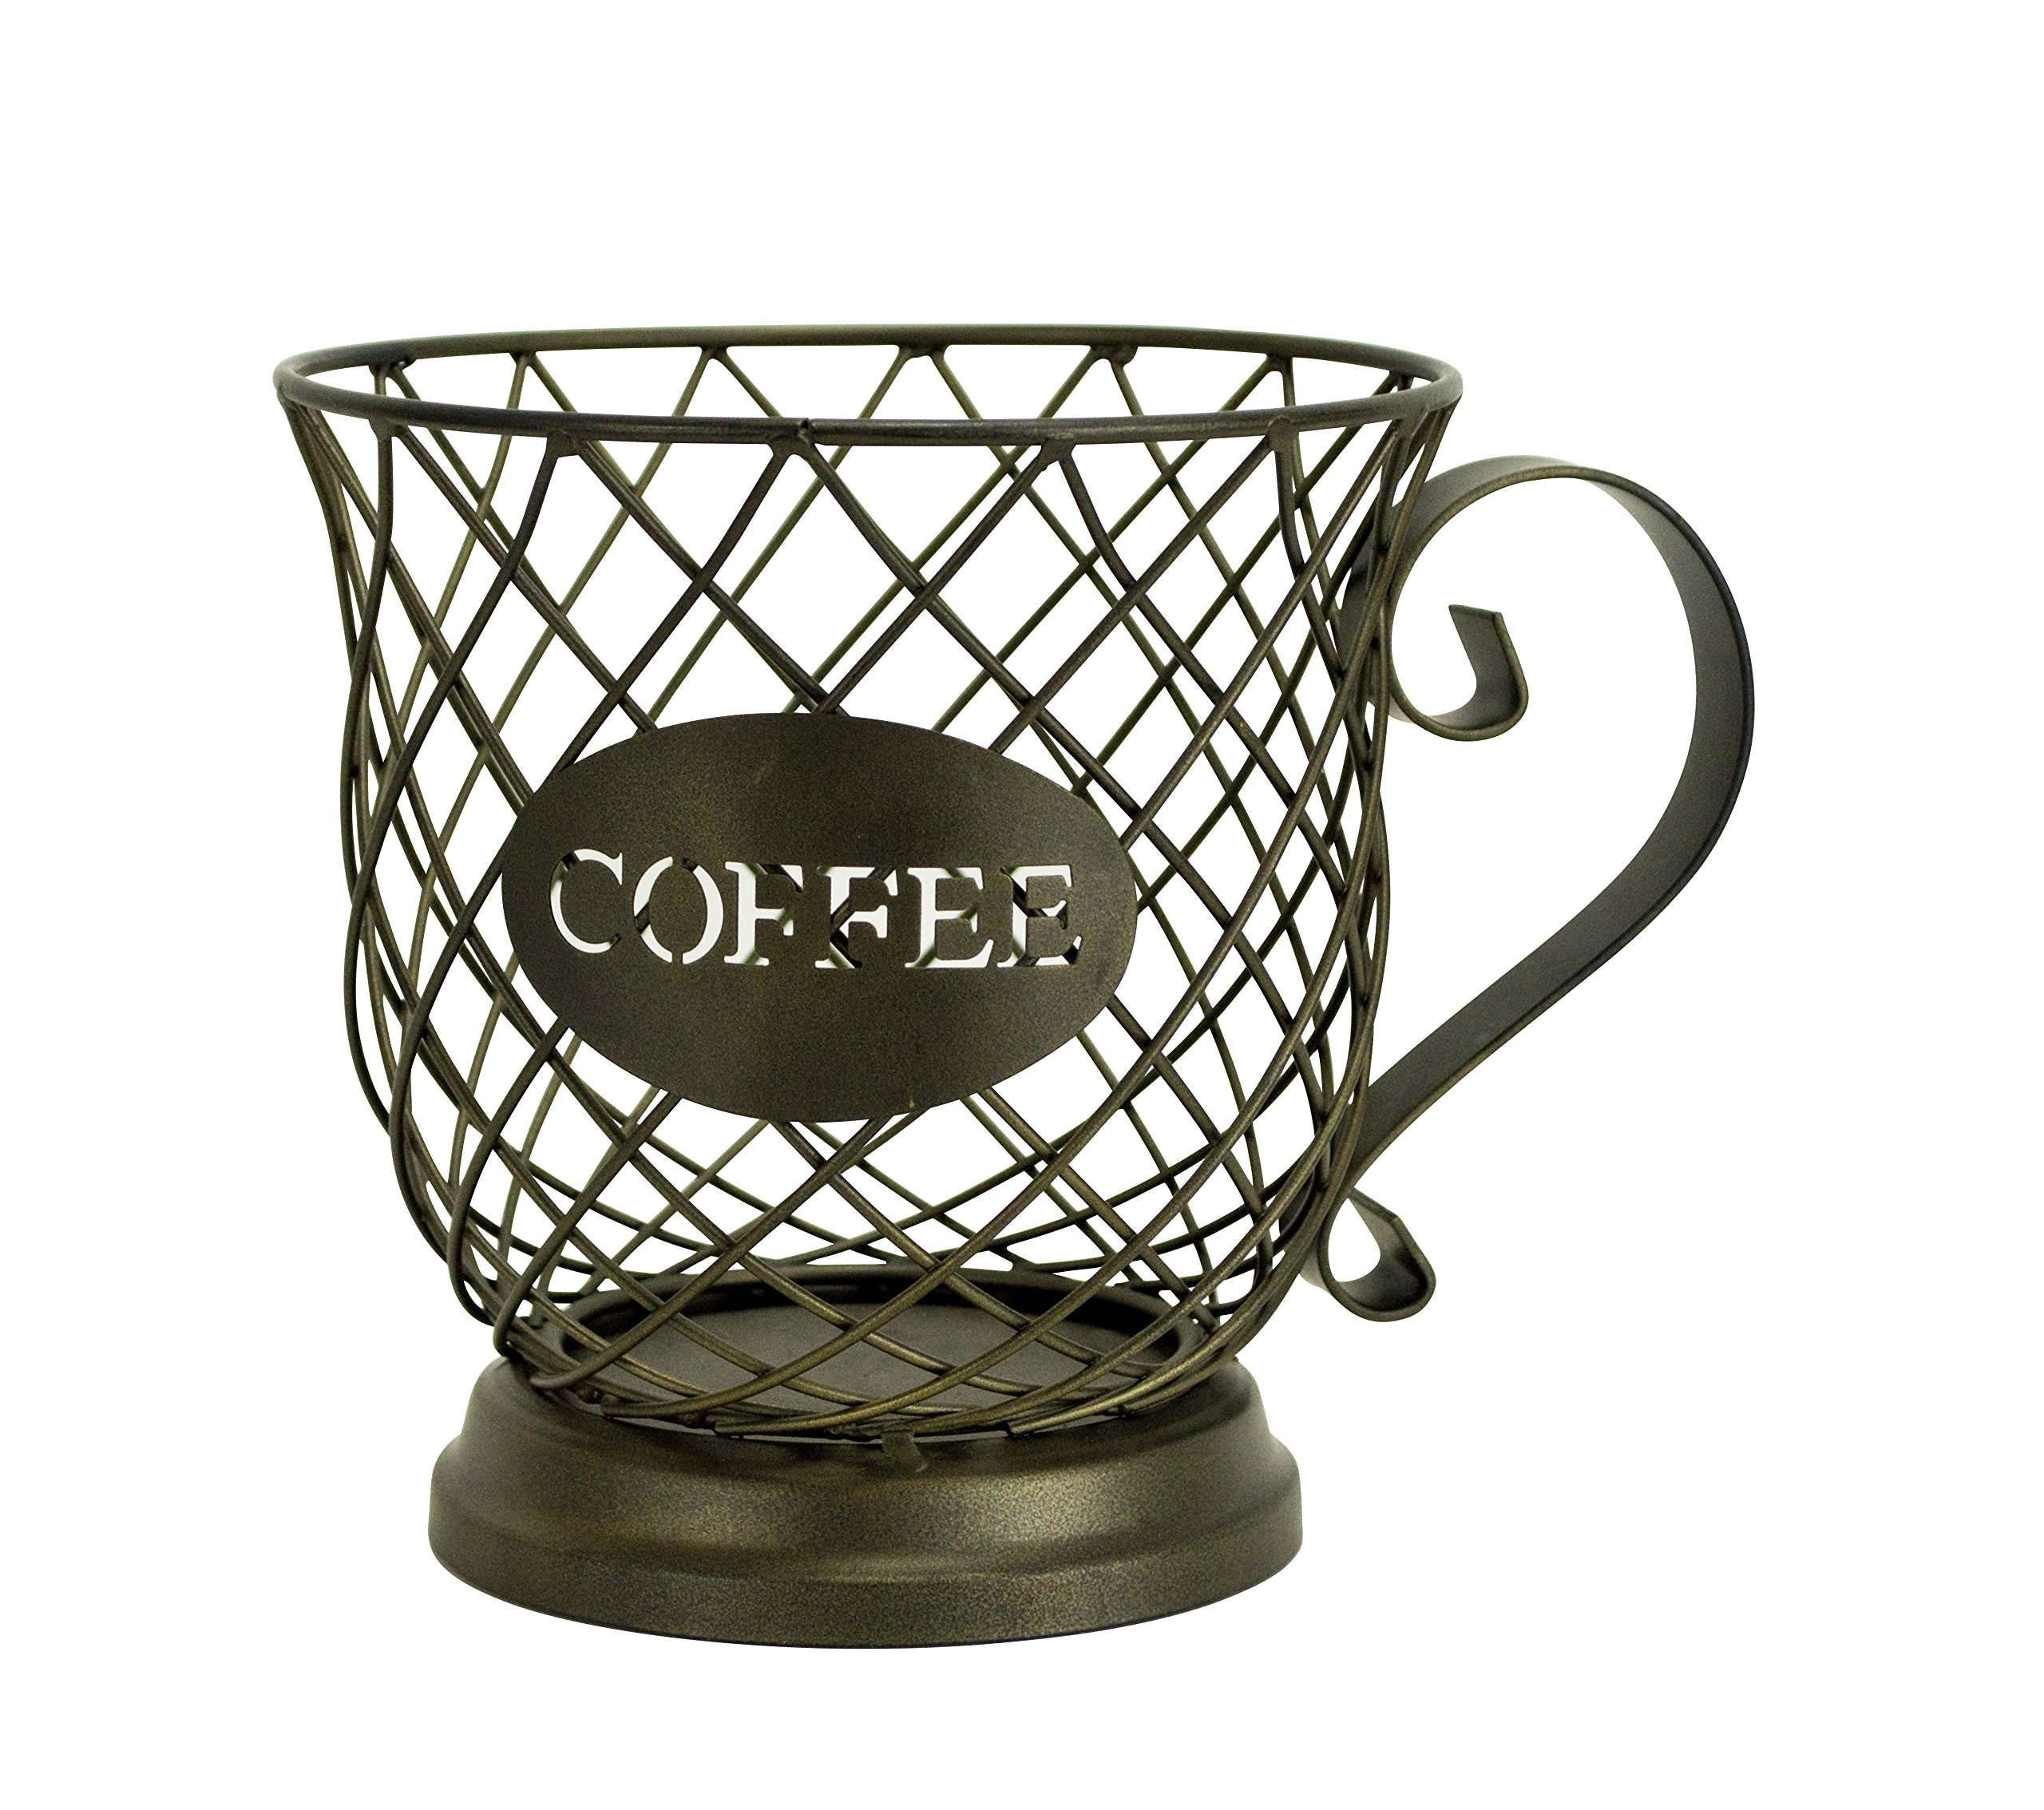 Kup Keeper Coffee & Espresso Pod Holder, Coffee Mug Storage Basket by Boston Warehouse